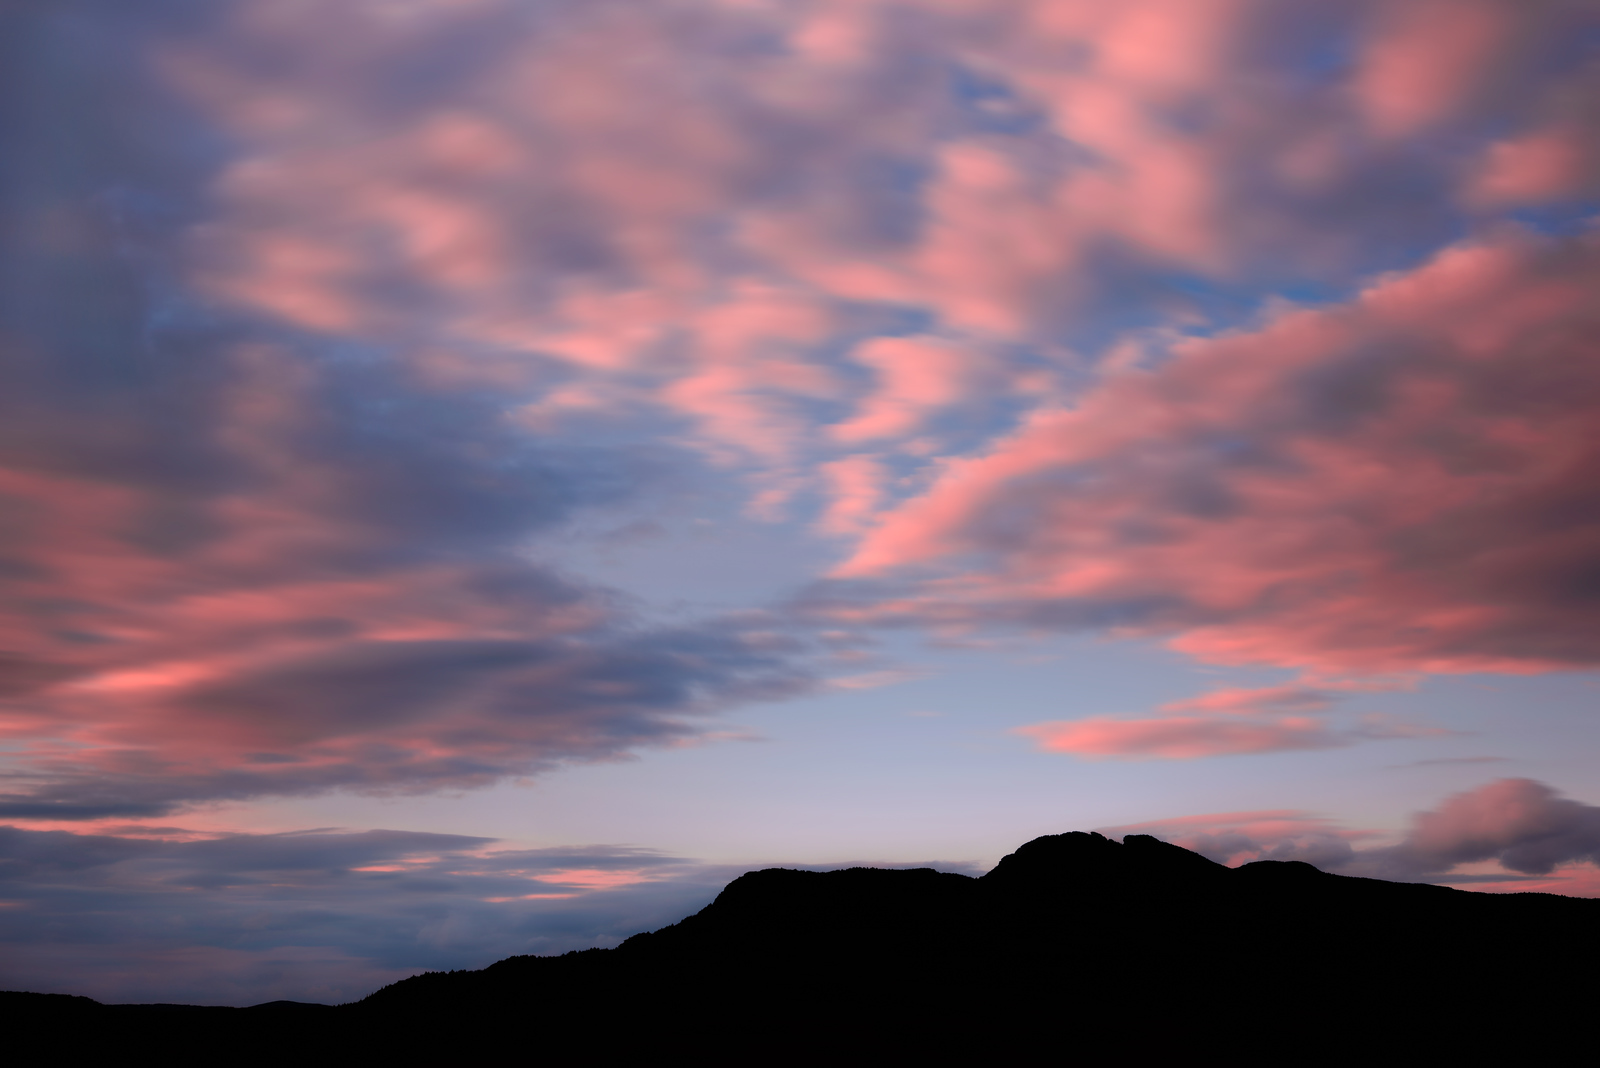 Moving Sunset of Grandfather Mountain